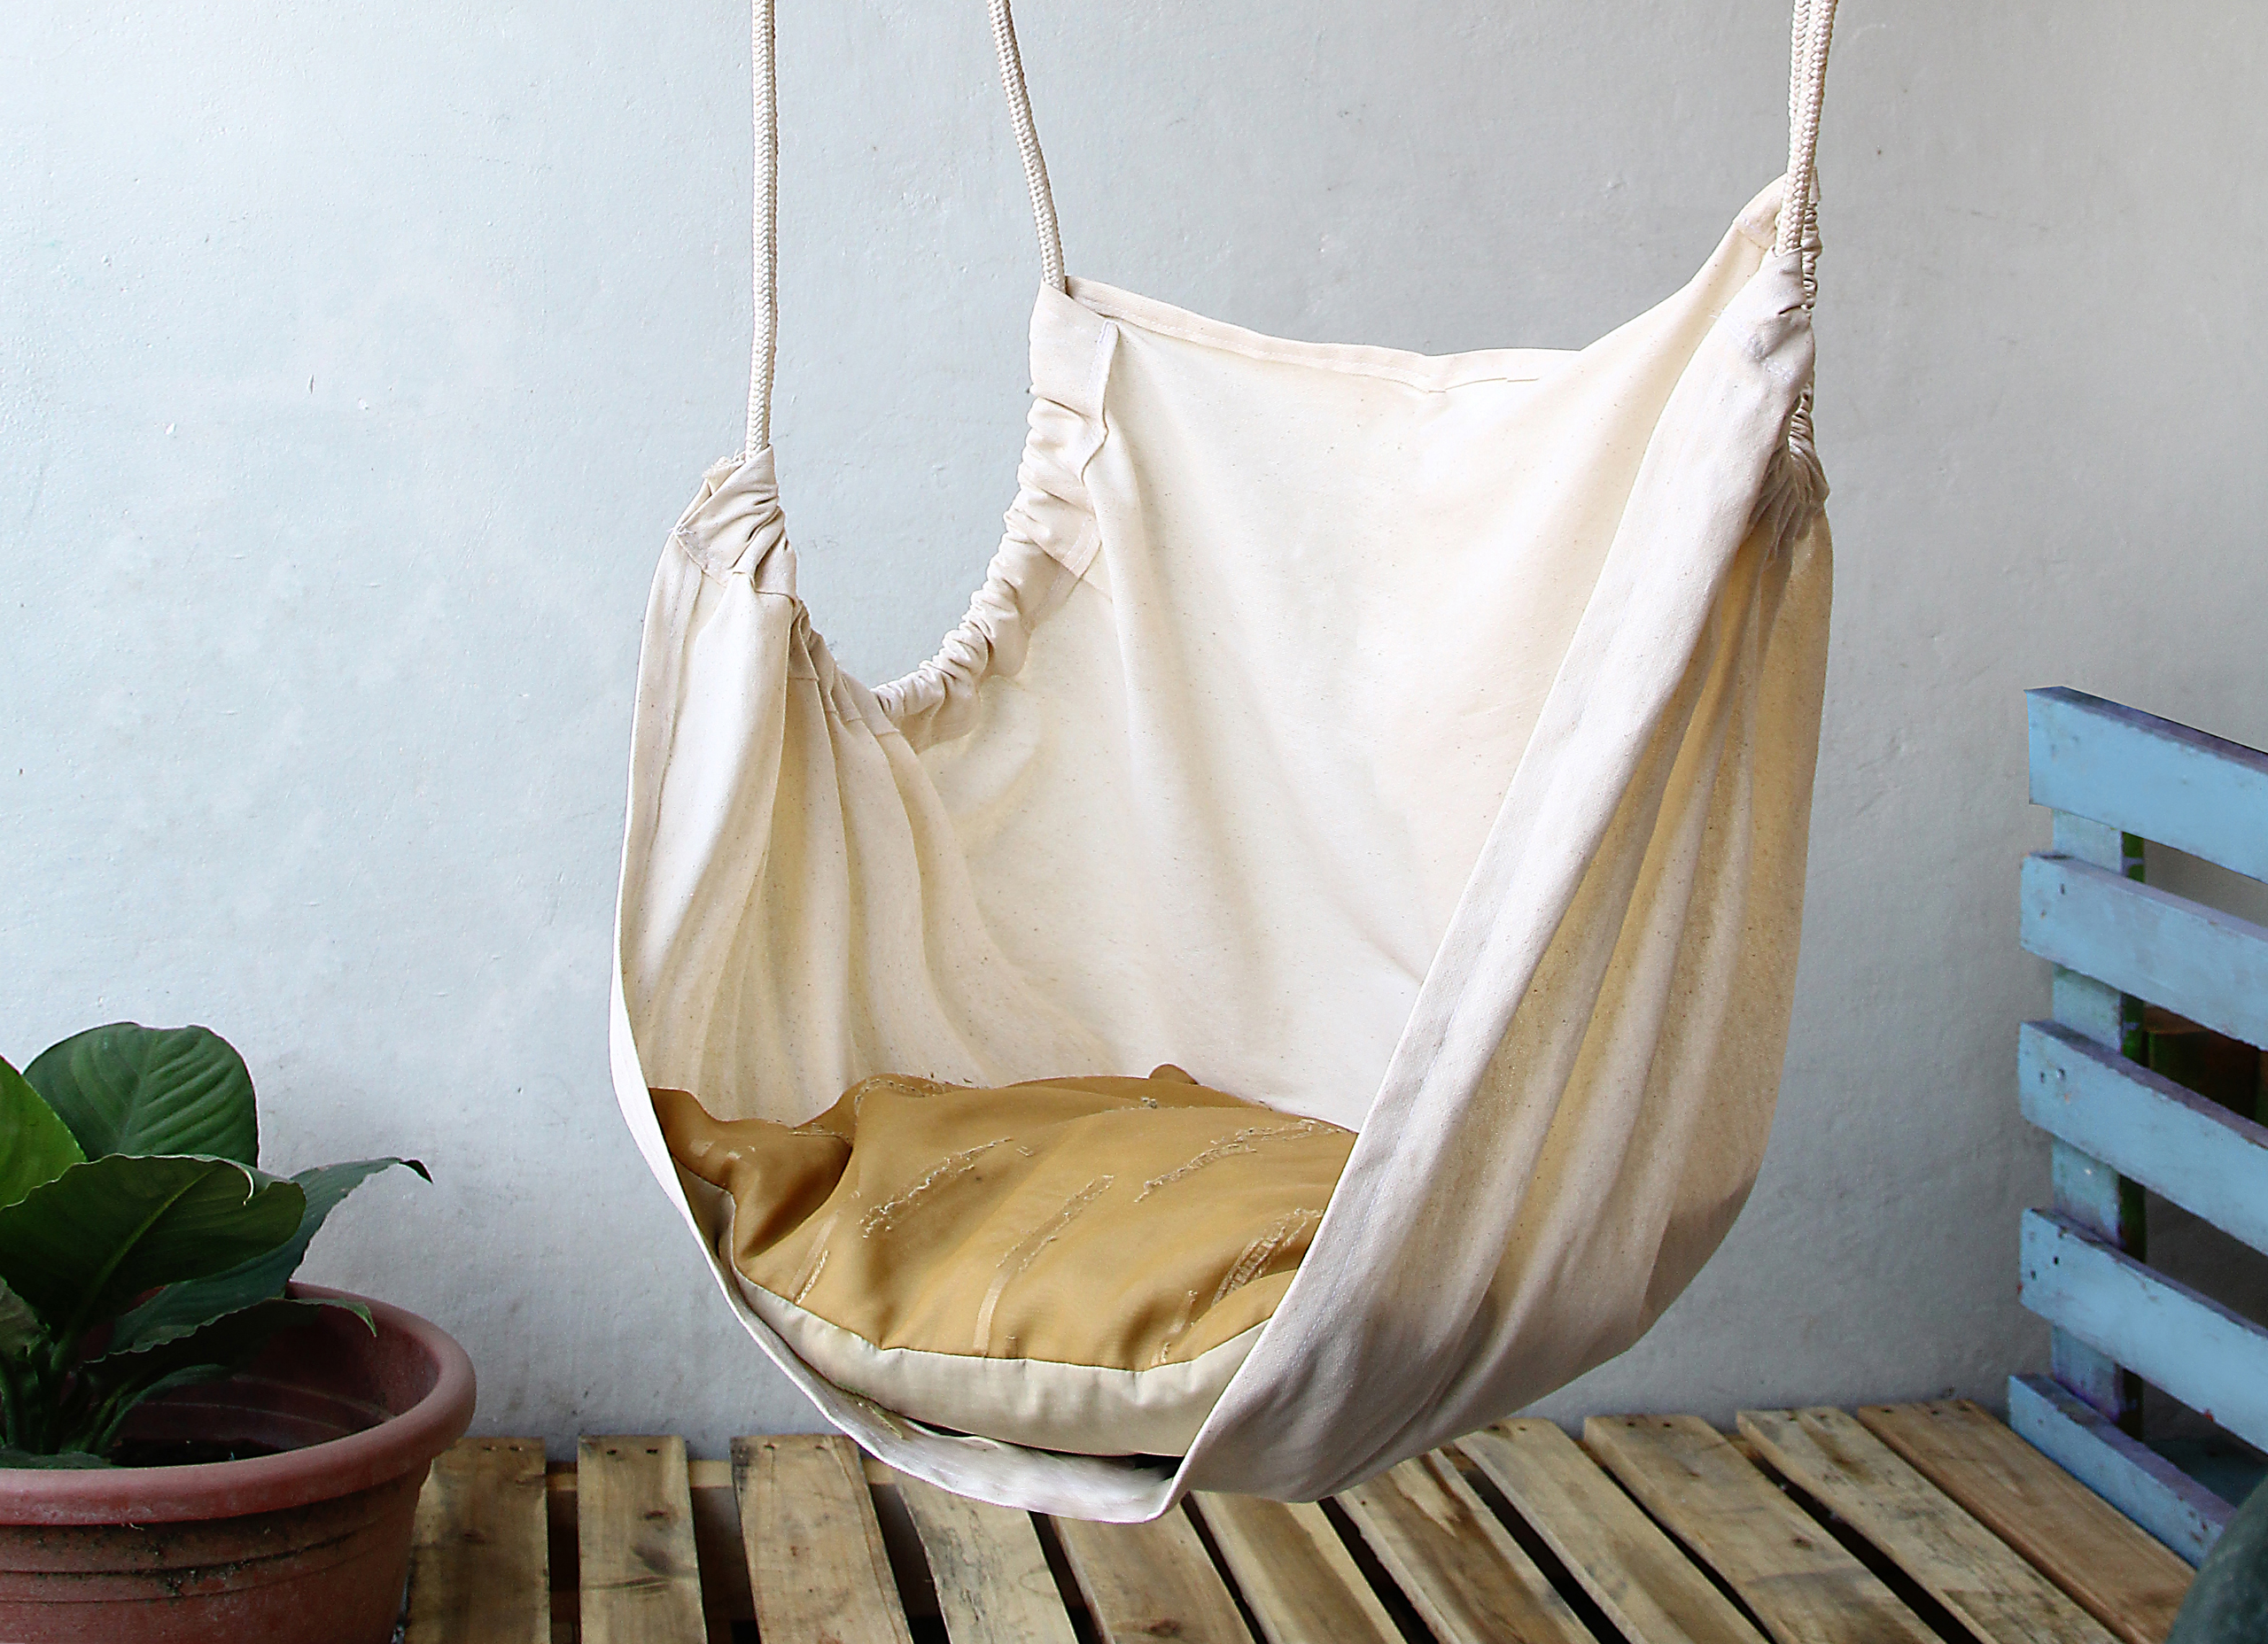 How To Make A Hammock Chair How To Make A Hammock Chair 14 Easy Steps With Pictures